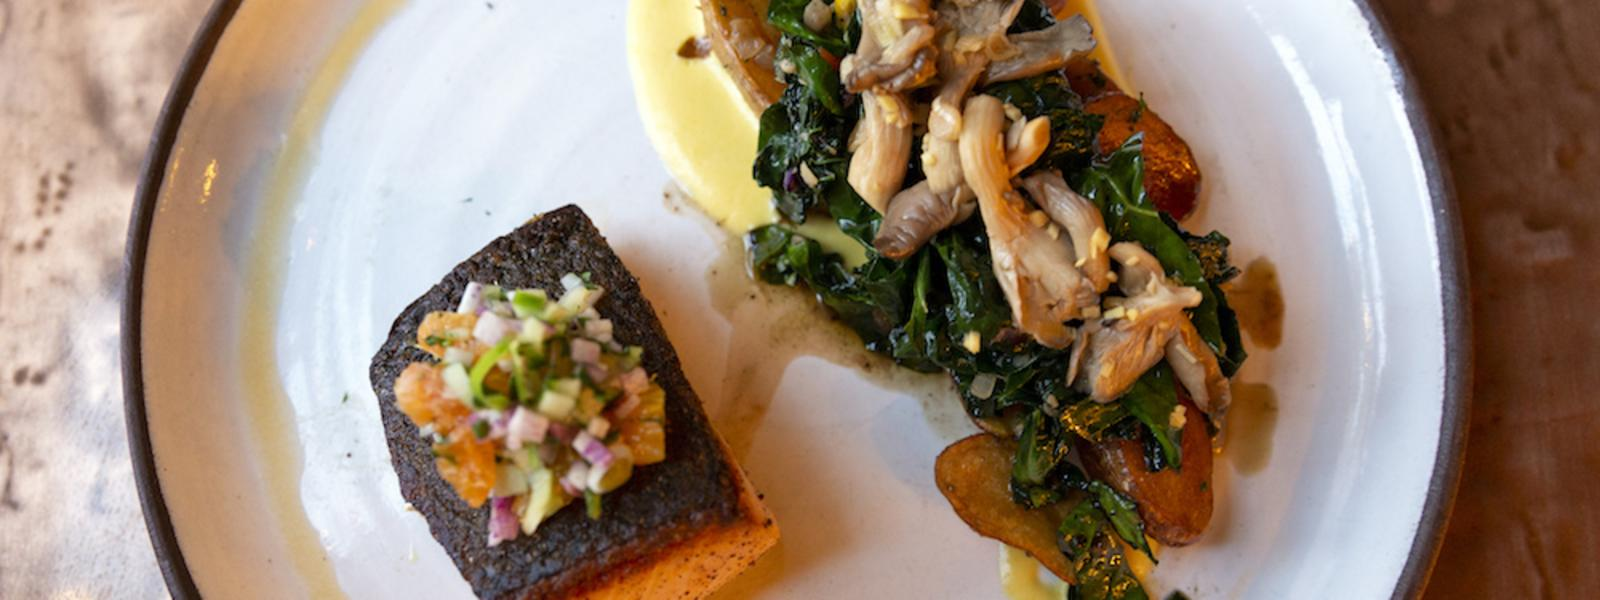 plate of salmon and kale